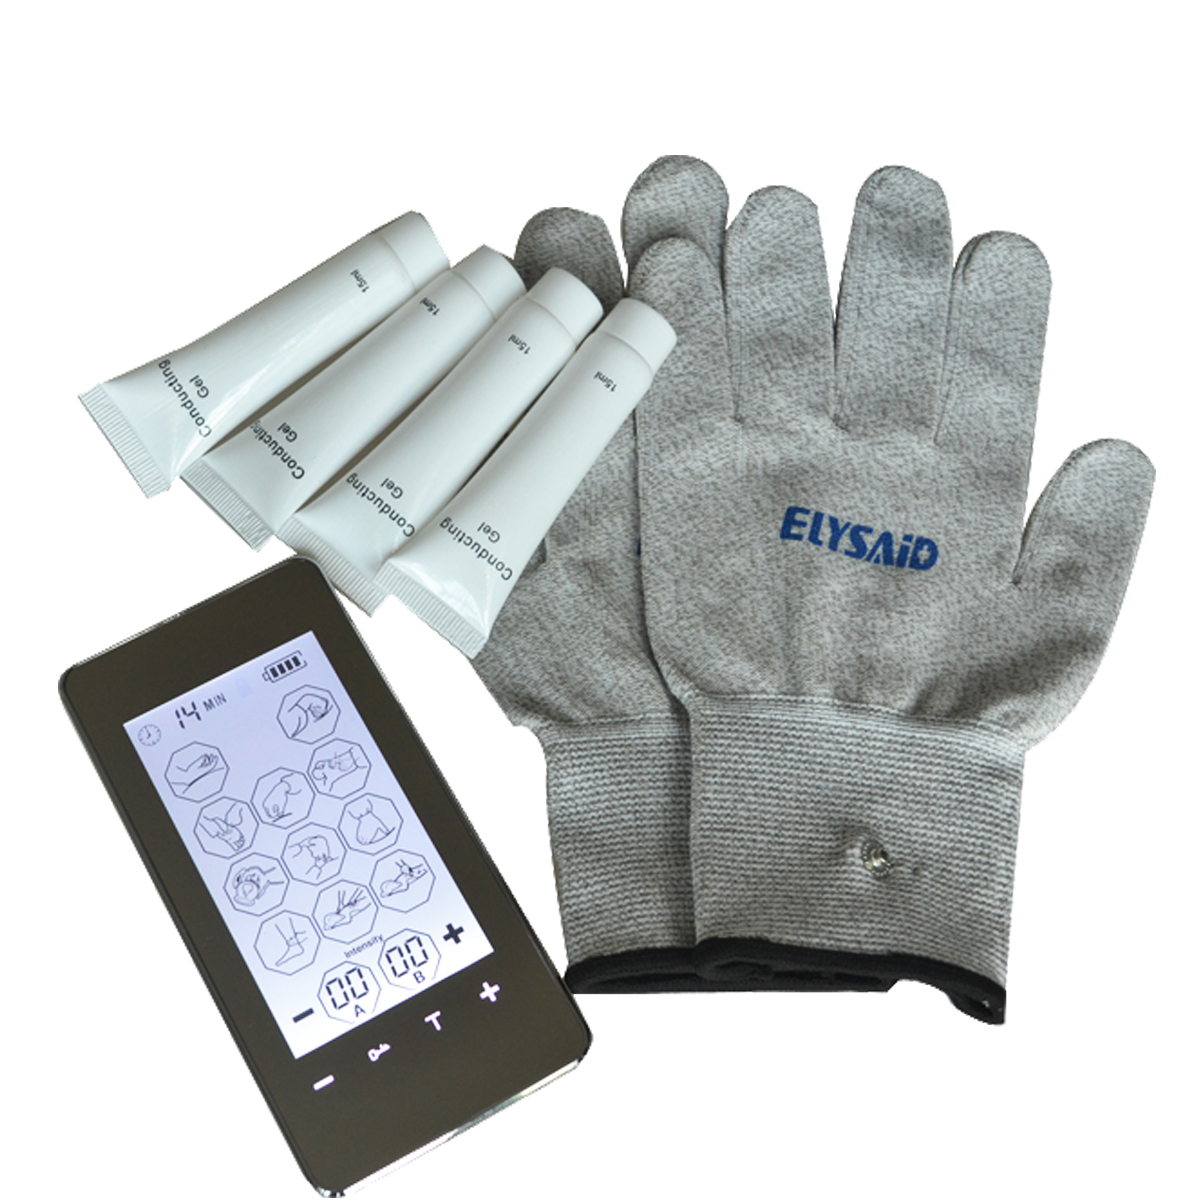 Touch Screen Smart Tens Massager Electronic Puls Machine Devic 12Mode Therapy Unit With Conductive Glove And 4Pcs Conducting Gel tens led screen magic electrictronic pulse healthcare massager blood circumstance 1pair physiotherapy gloves 4pcs conducting gel